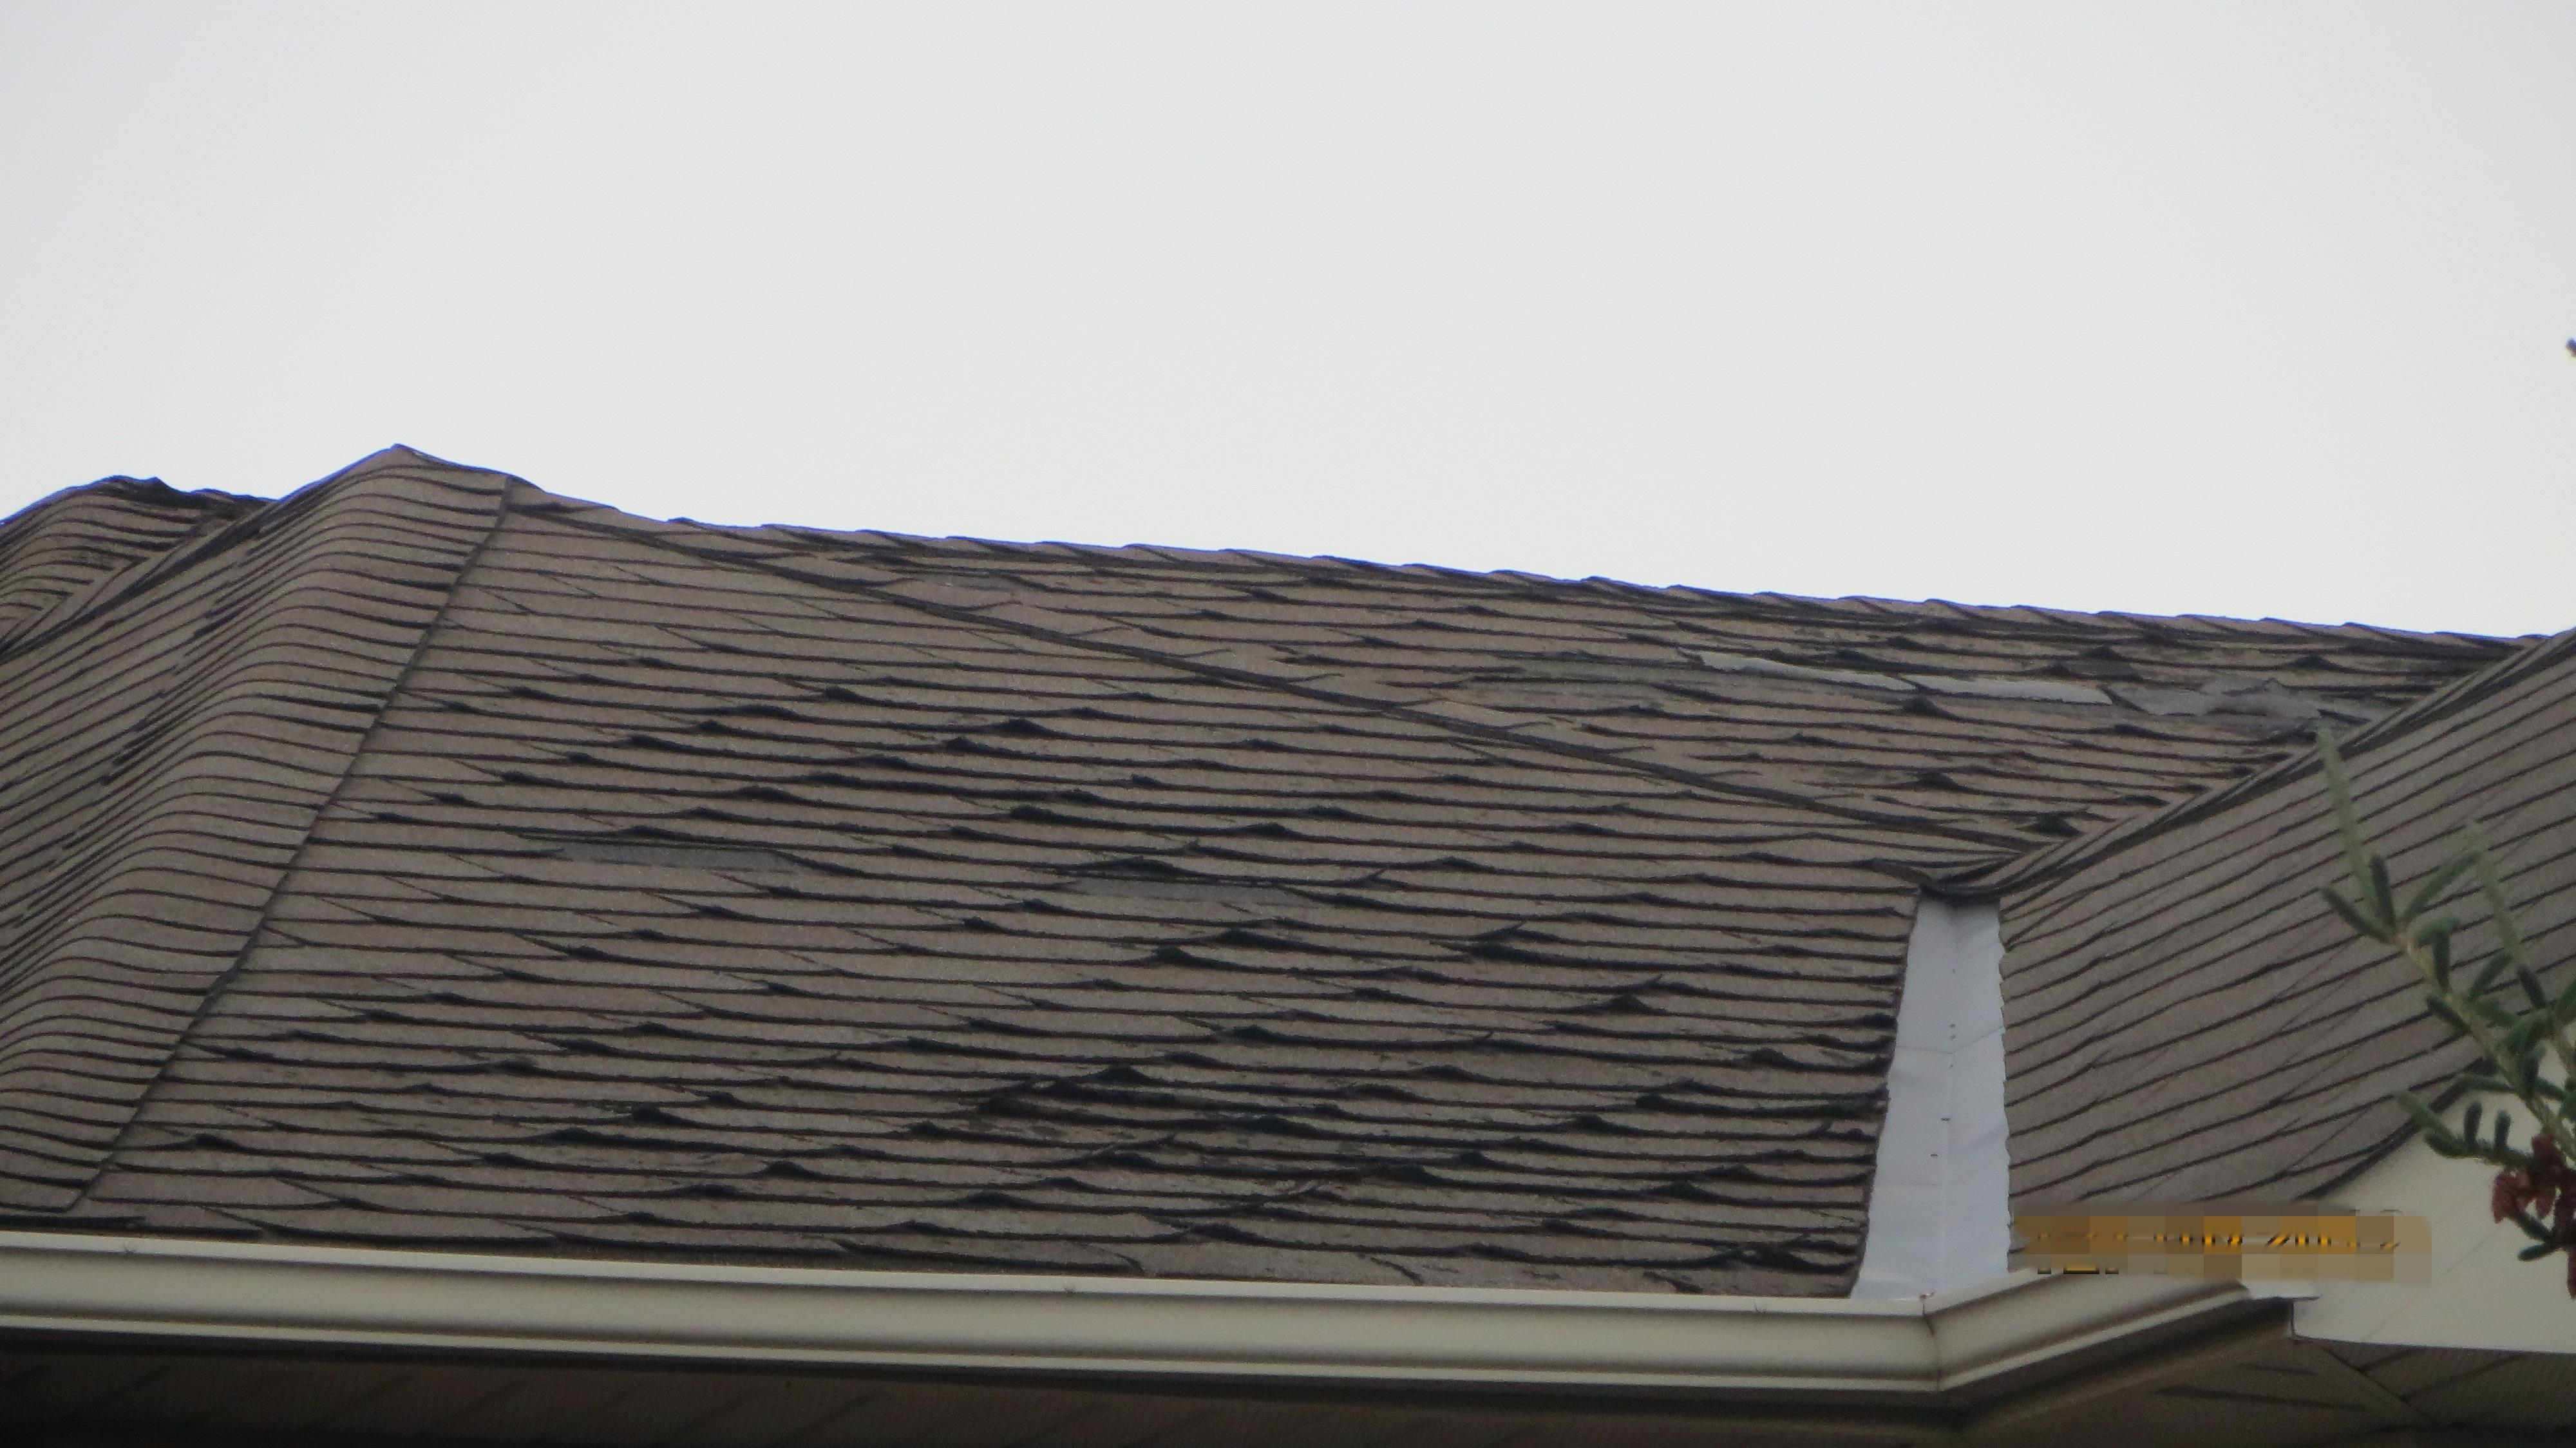 Missing and damaged roof shingles